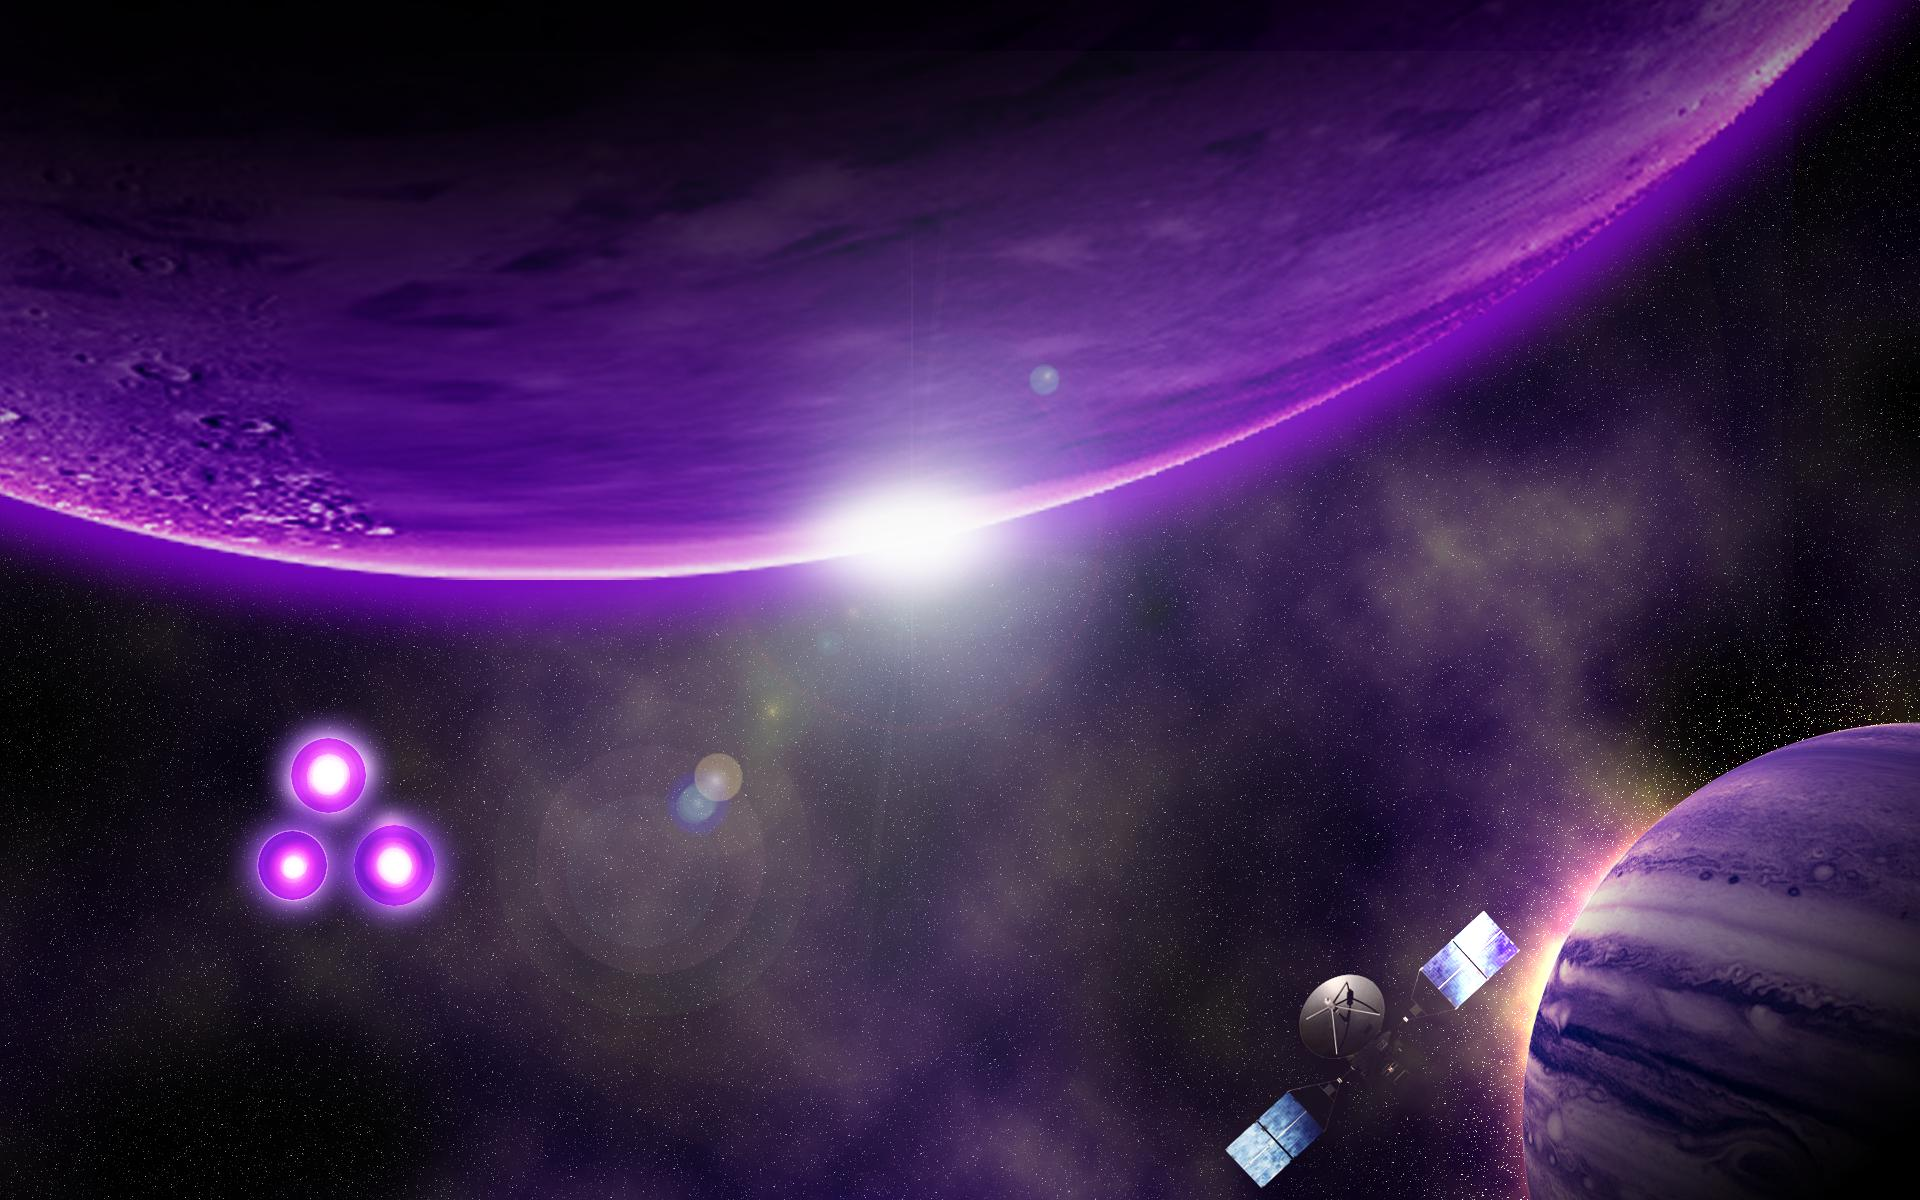 Purple Planets In Space Wallpapers - 1920x1200 - 274794